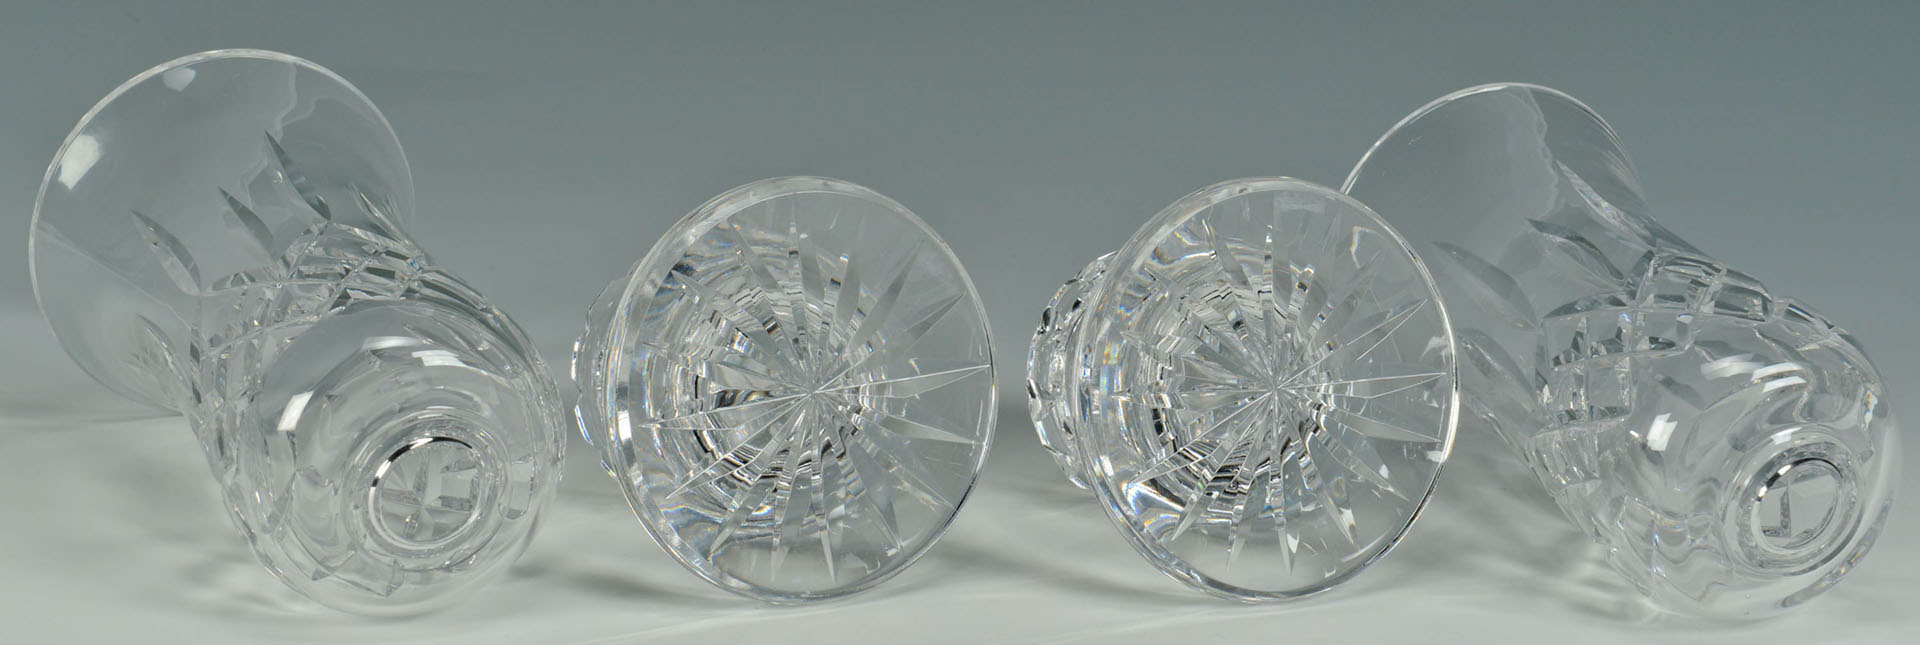 Lot 511: Pr. of Waterford Crystal Hurricane Candle Holders